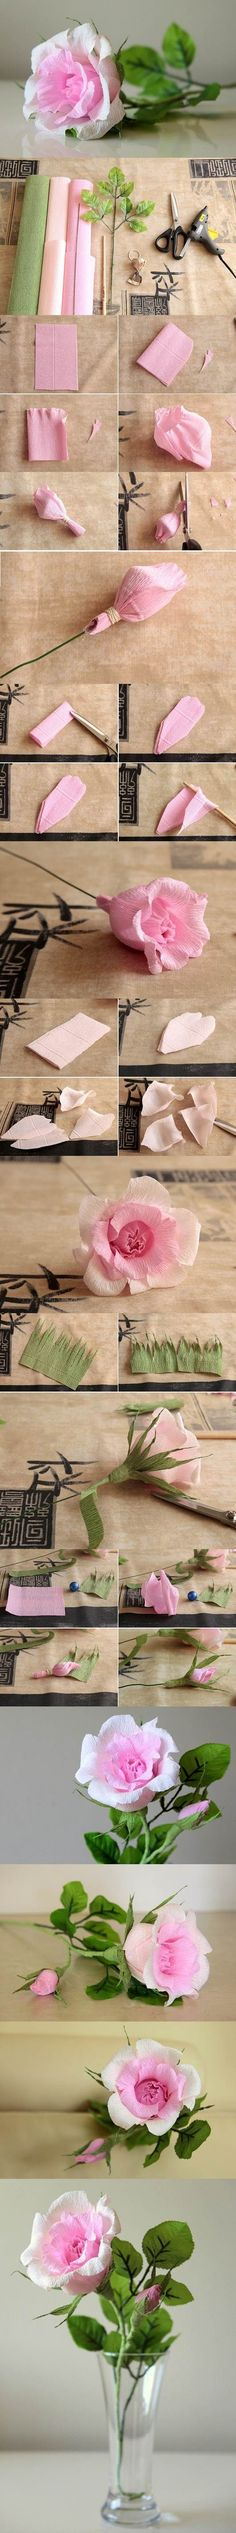 DIY Beautiful Pink Crepe Paper Rose | iCreativeIdeas.com LIKE Us on Facebook ==> https://www.facebook.com/icreativeideas